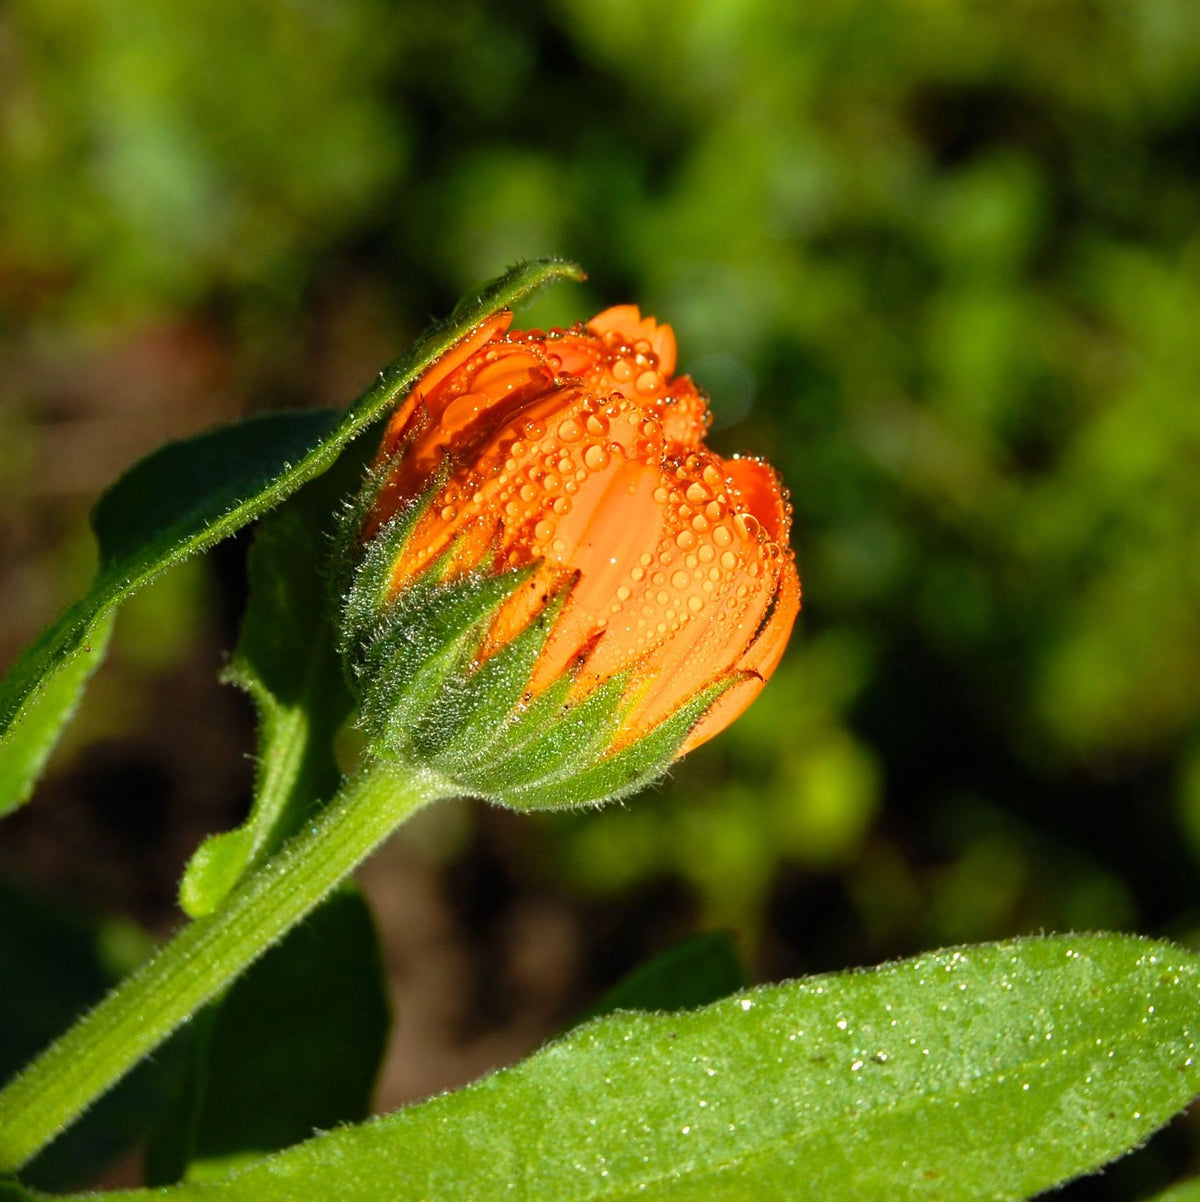 Does calendula help with scar?